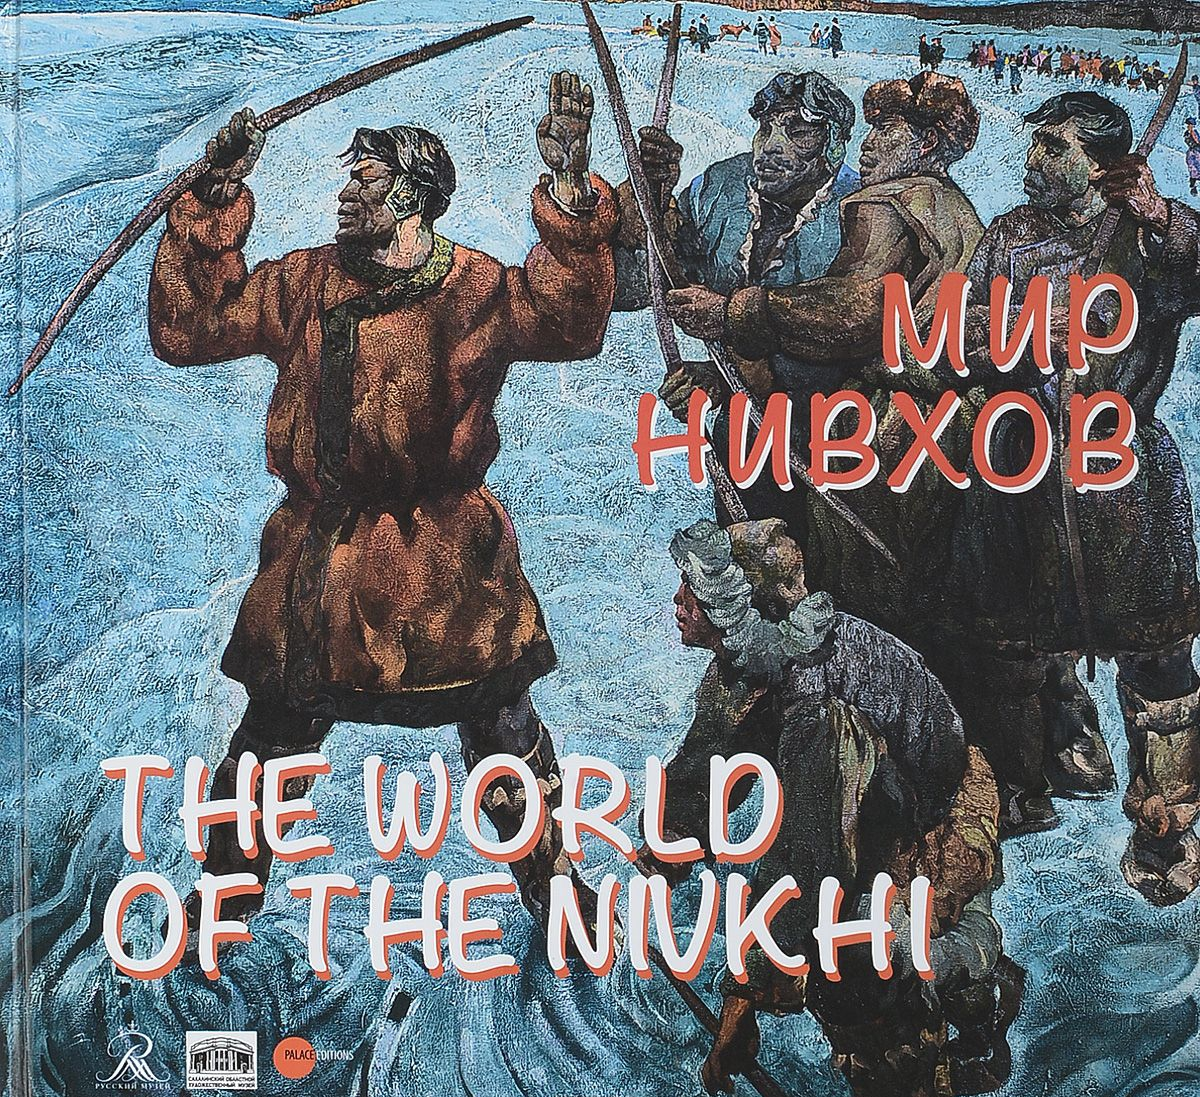 Mir nivkhov / The World of the Nivkhi